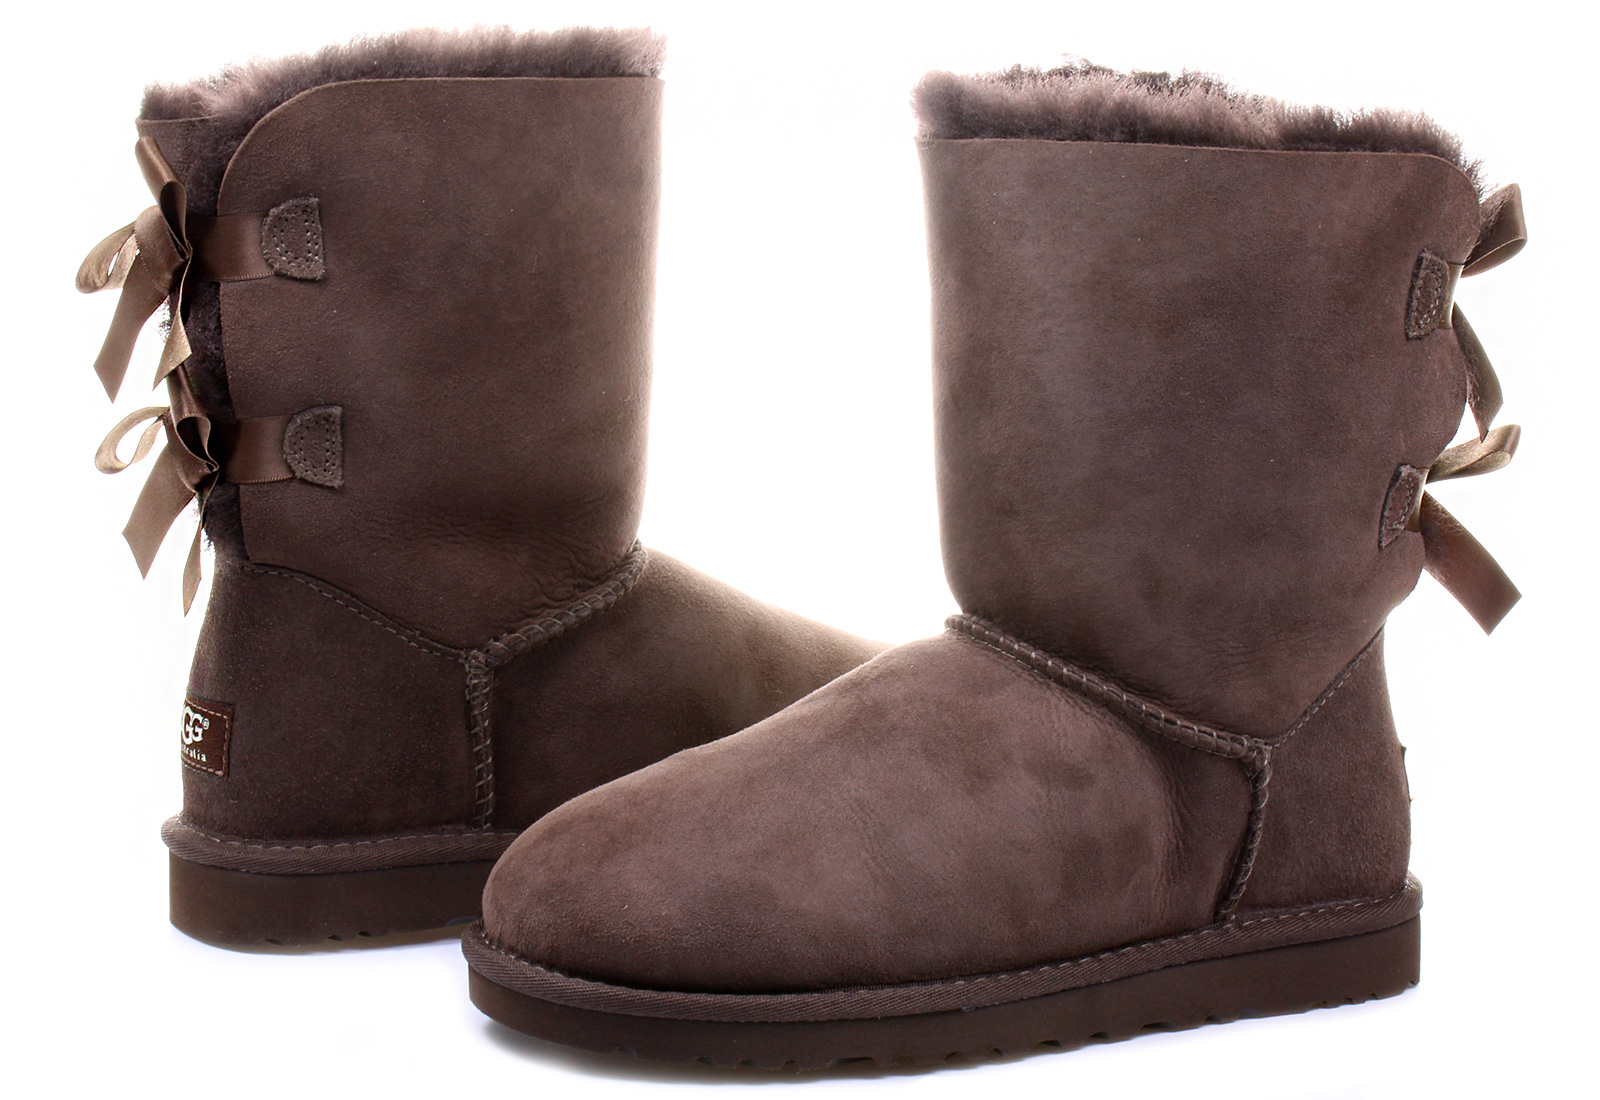 ugg boots with bows - photo #48